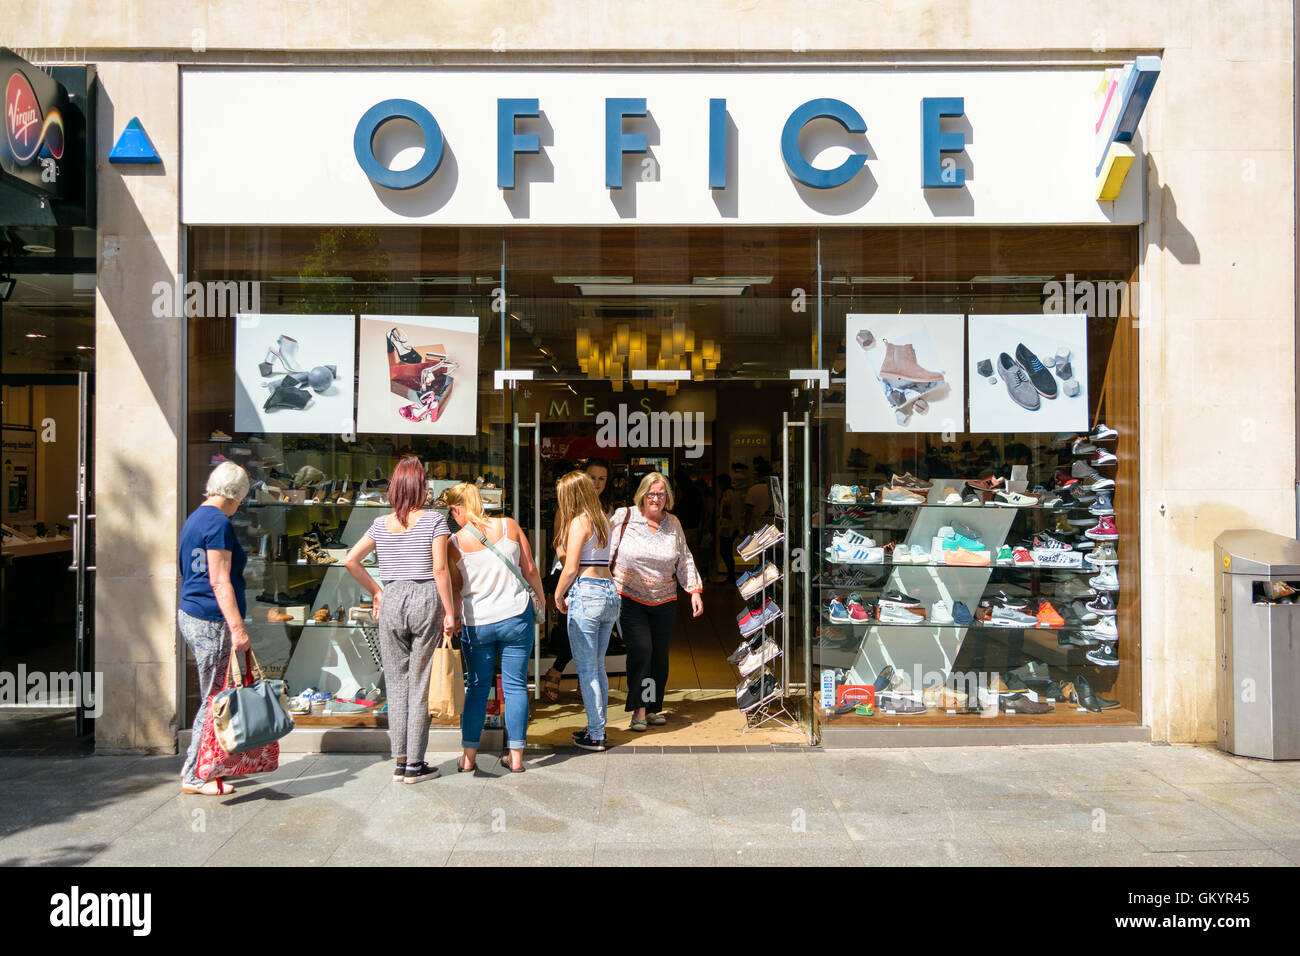 Exeter, Devon, United Kingdom - August 23, 2016: Women look at shoes ...